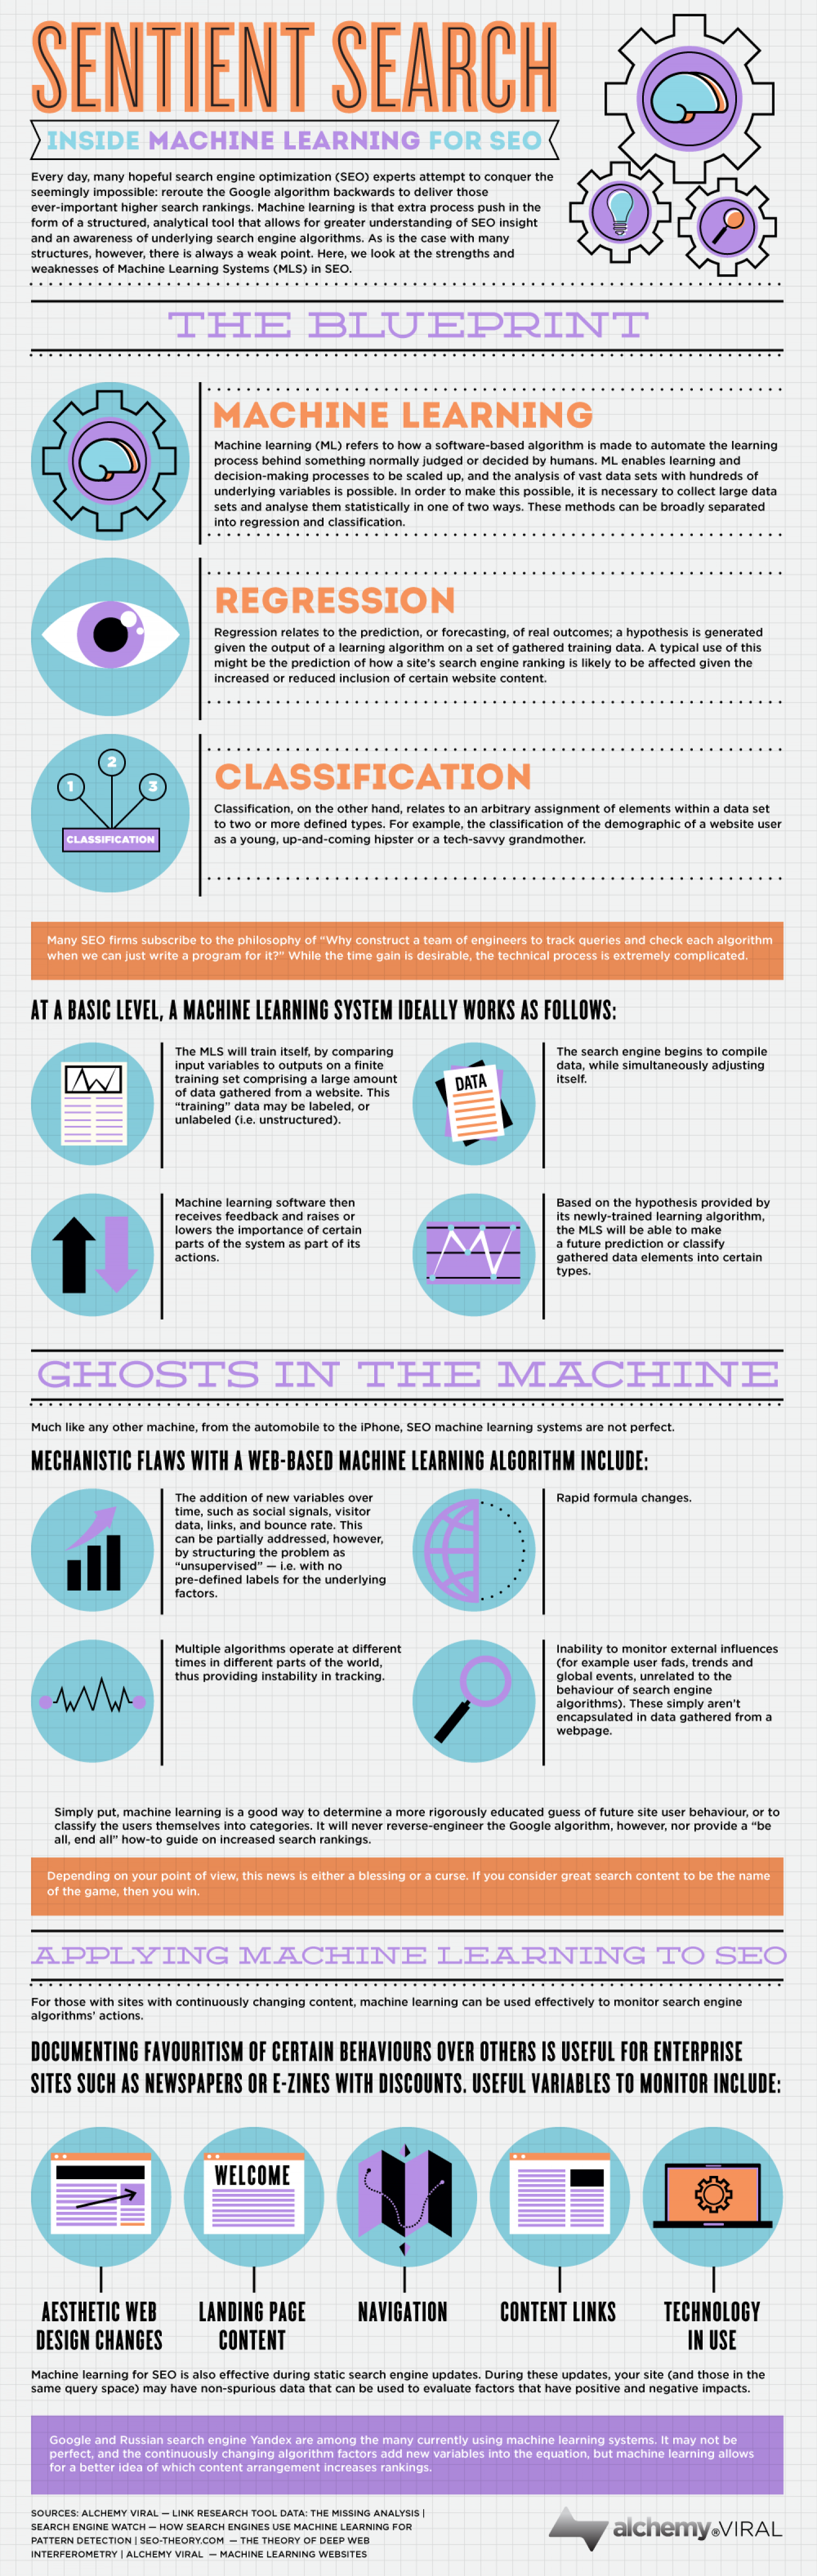 Strengths & Weaknessess of Machine Learning Systems (MLS) in SEO Infographic